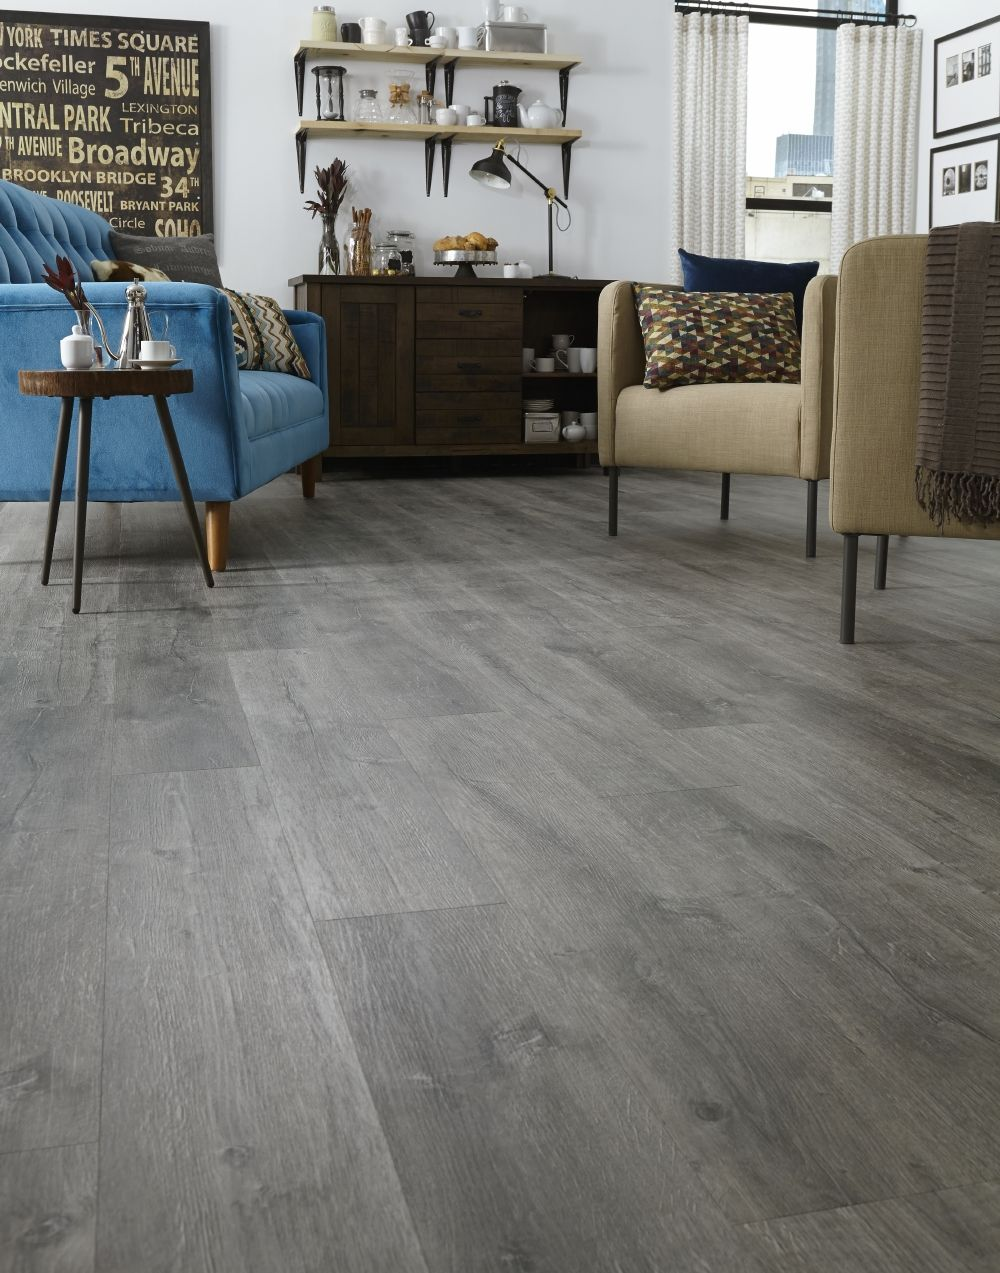 Mannington aspen driftadura max house n home basement mannington adura max aspen drift vinyl flooring sale prices and information wholesale prices on all diy vinyl tile floors from flooring market dailygadgetfo Gallery